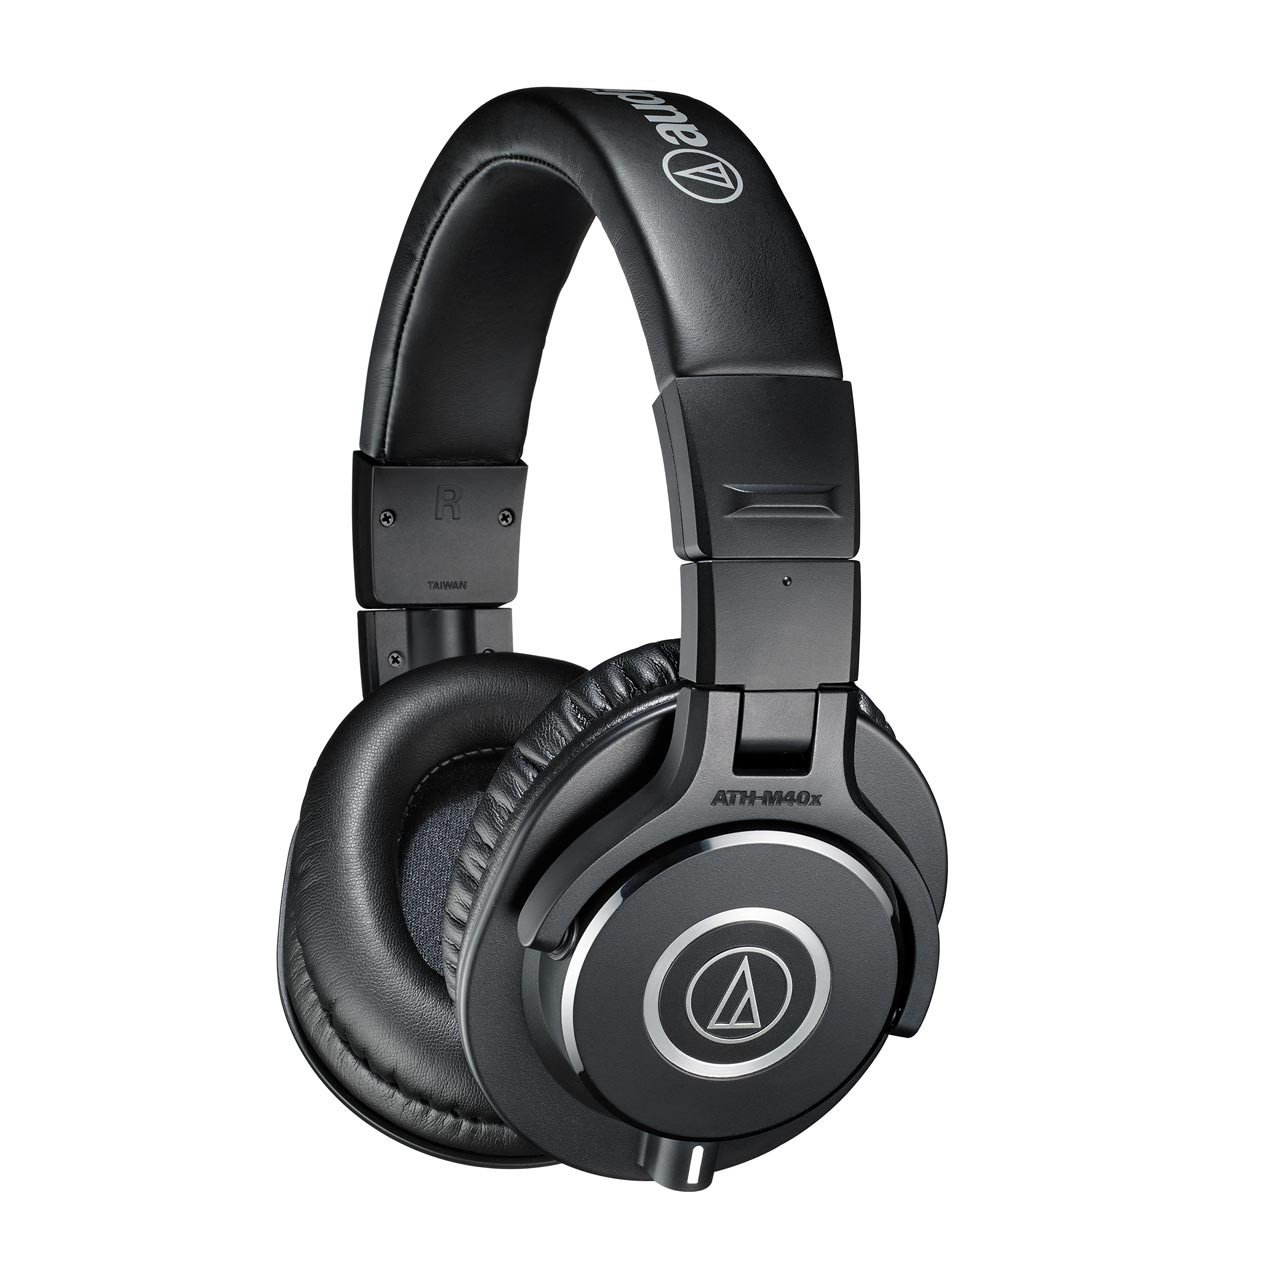 Closed Headphones - Audio-Technica ATH-M40x - Professional Monitor Headphones